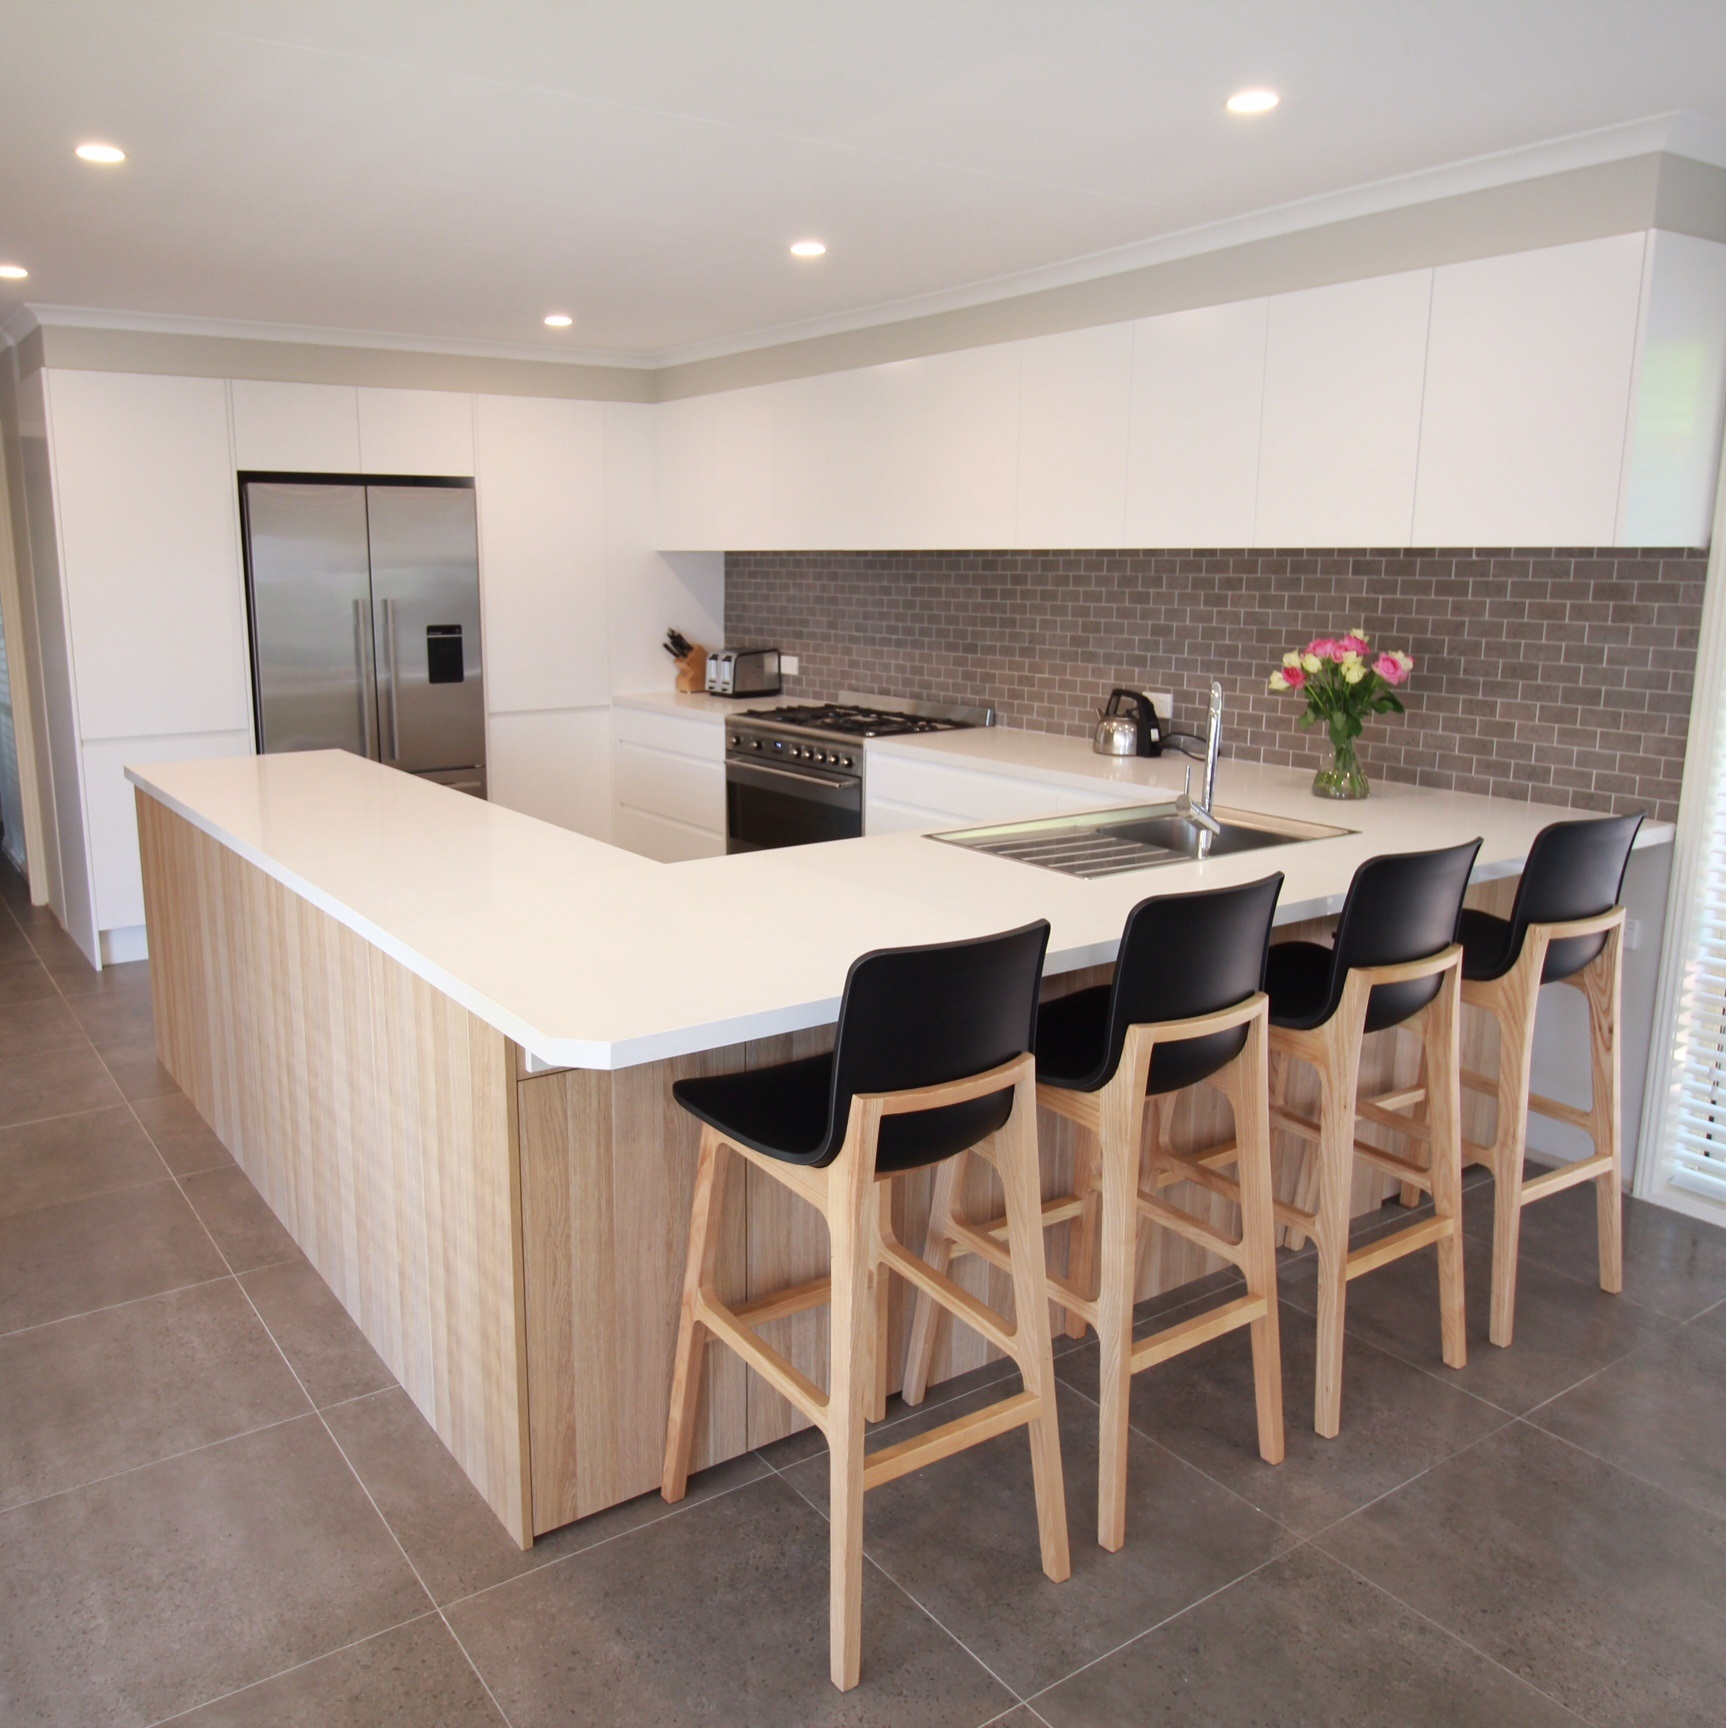 Kitchens Gallery | Knebel Kitchens NSW